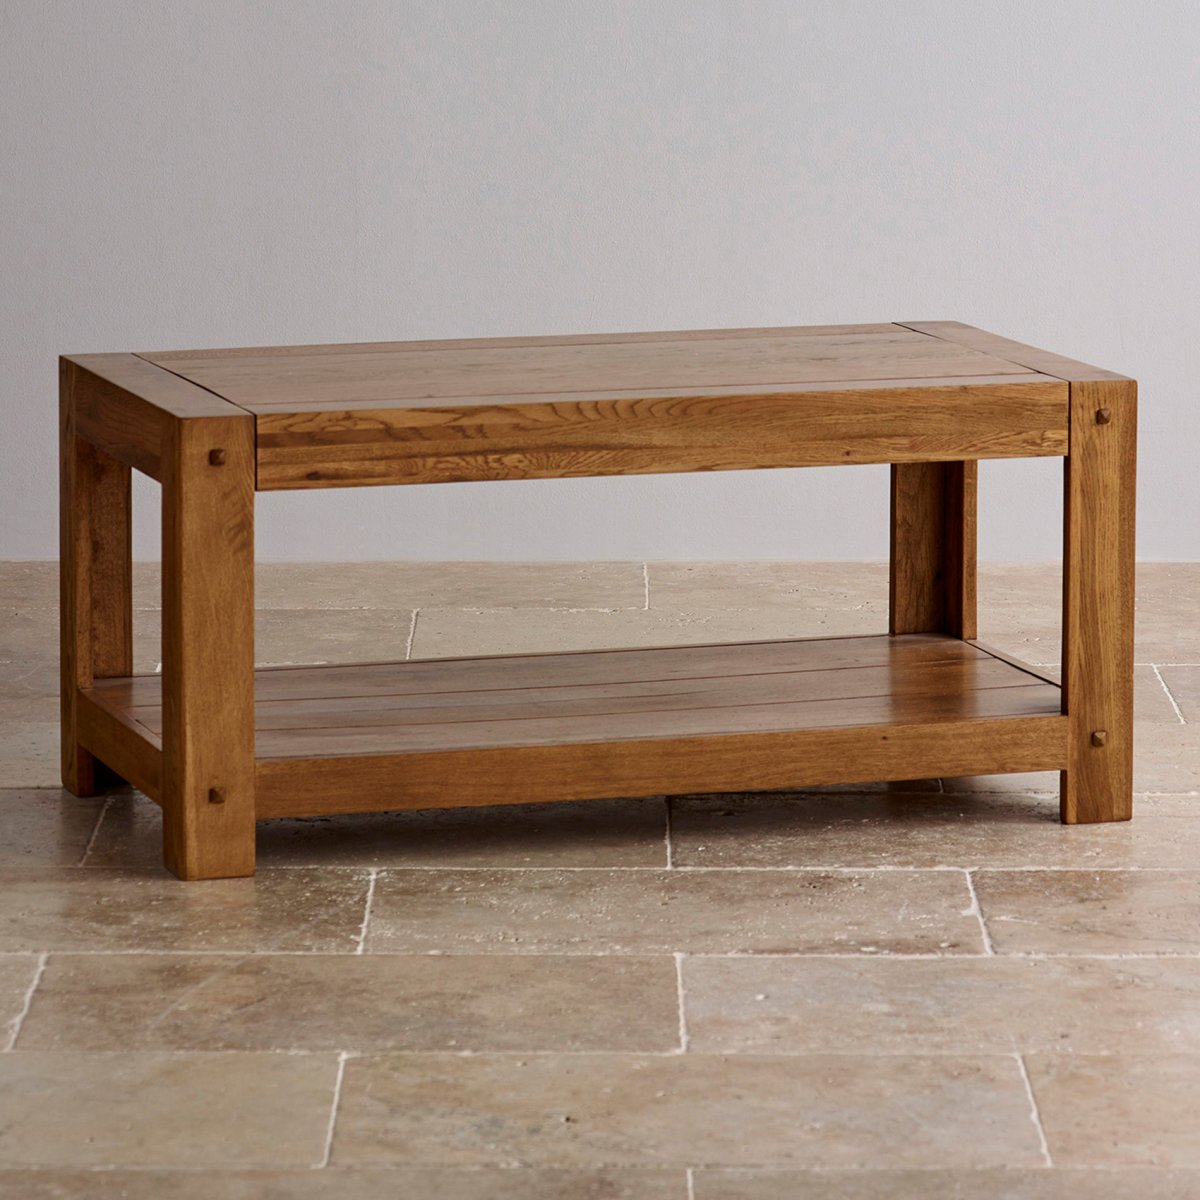 Quercus Coffee Table In Rustic Solid Oak Oak Furniture Land